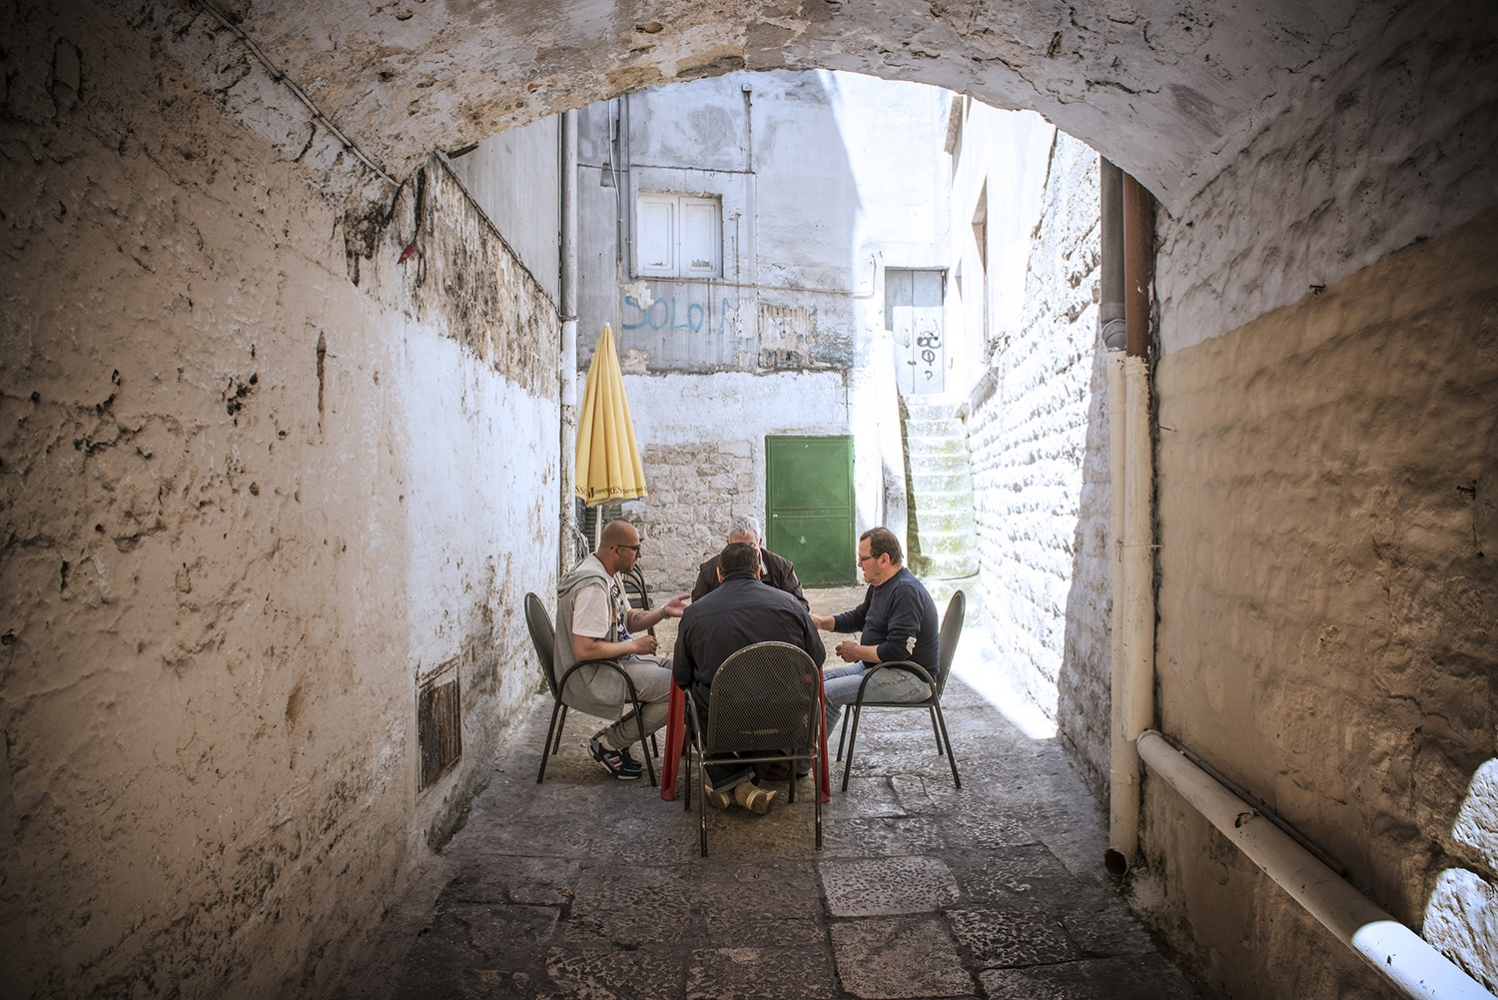 Inside the streets of Bari vecchia